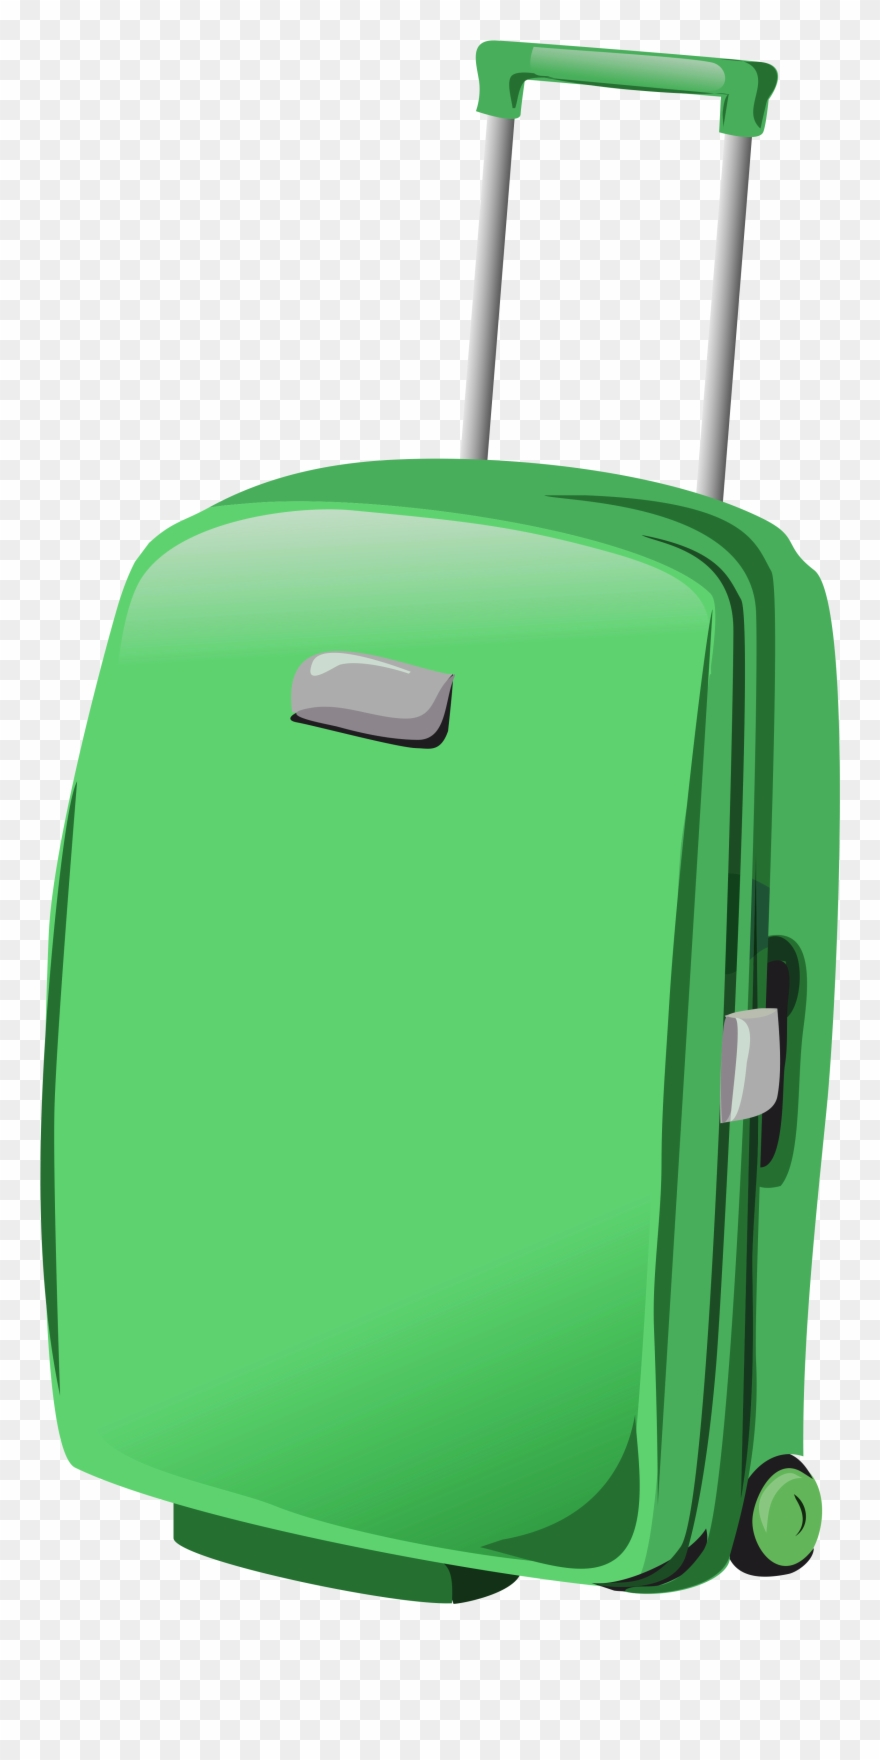 Luggage clipart green suitcase. Png clipartu b gallery